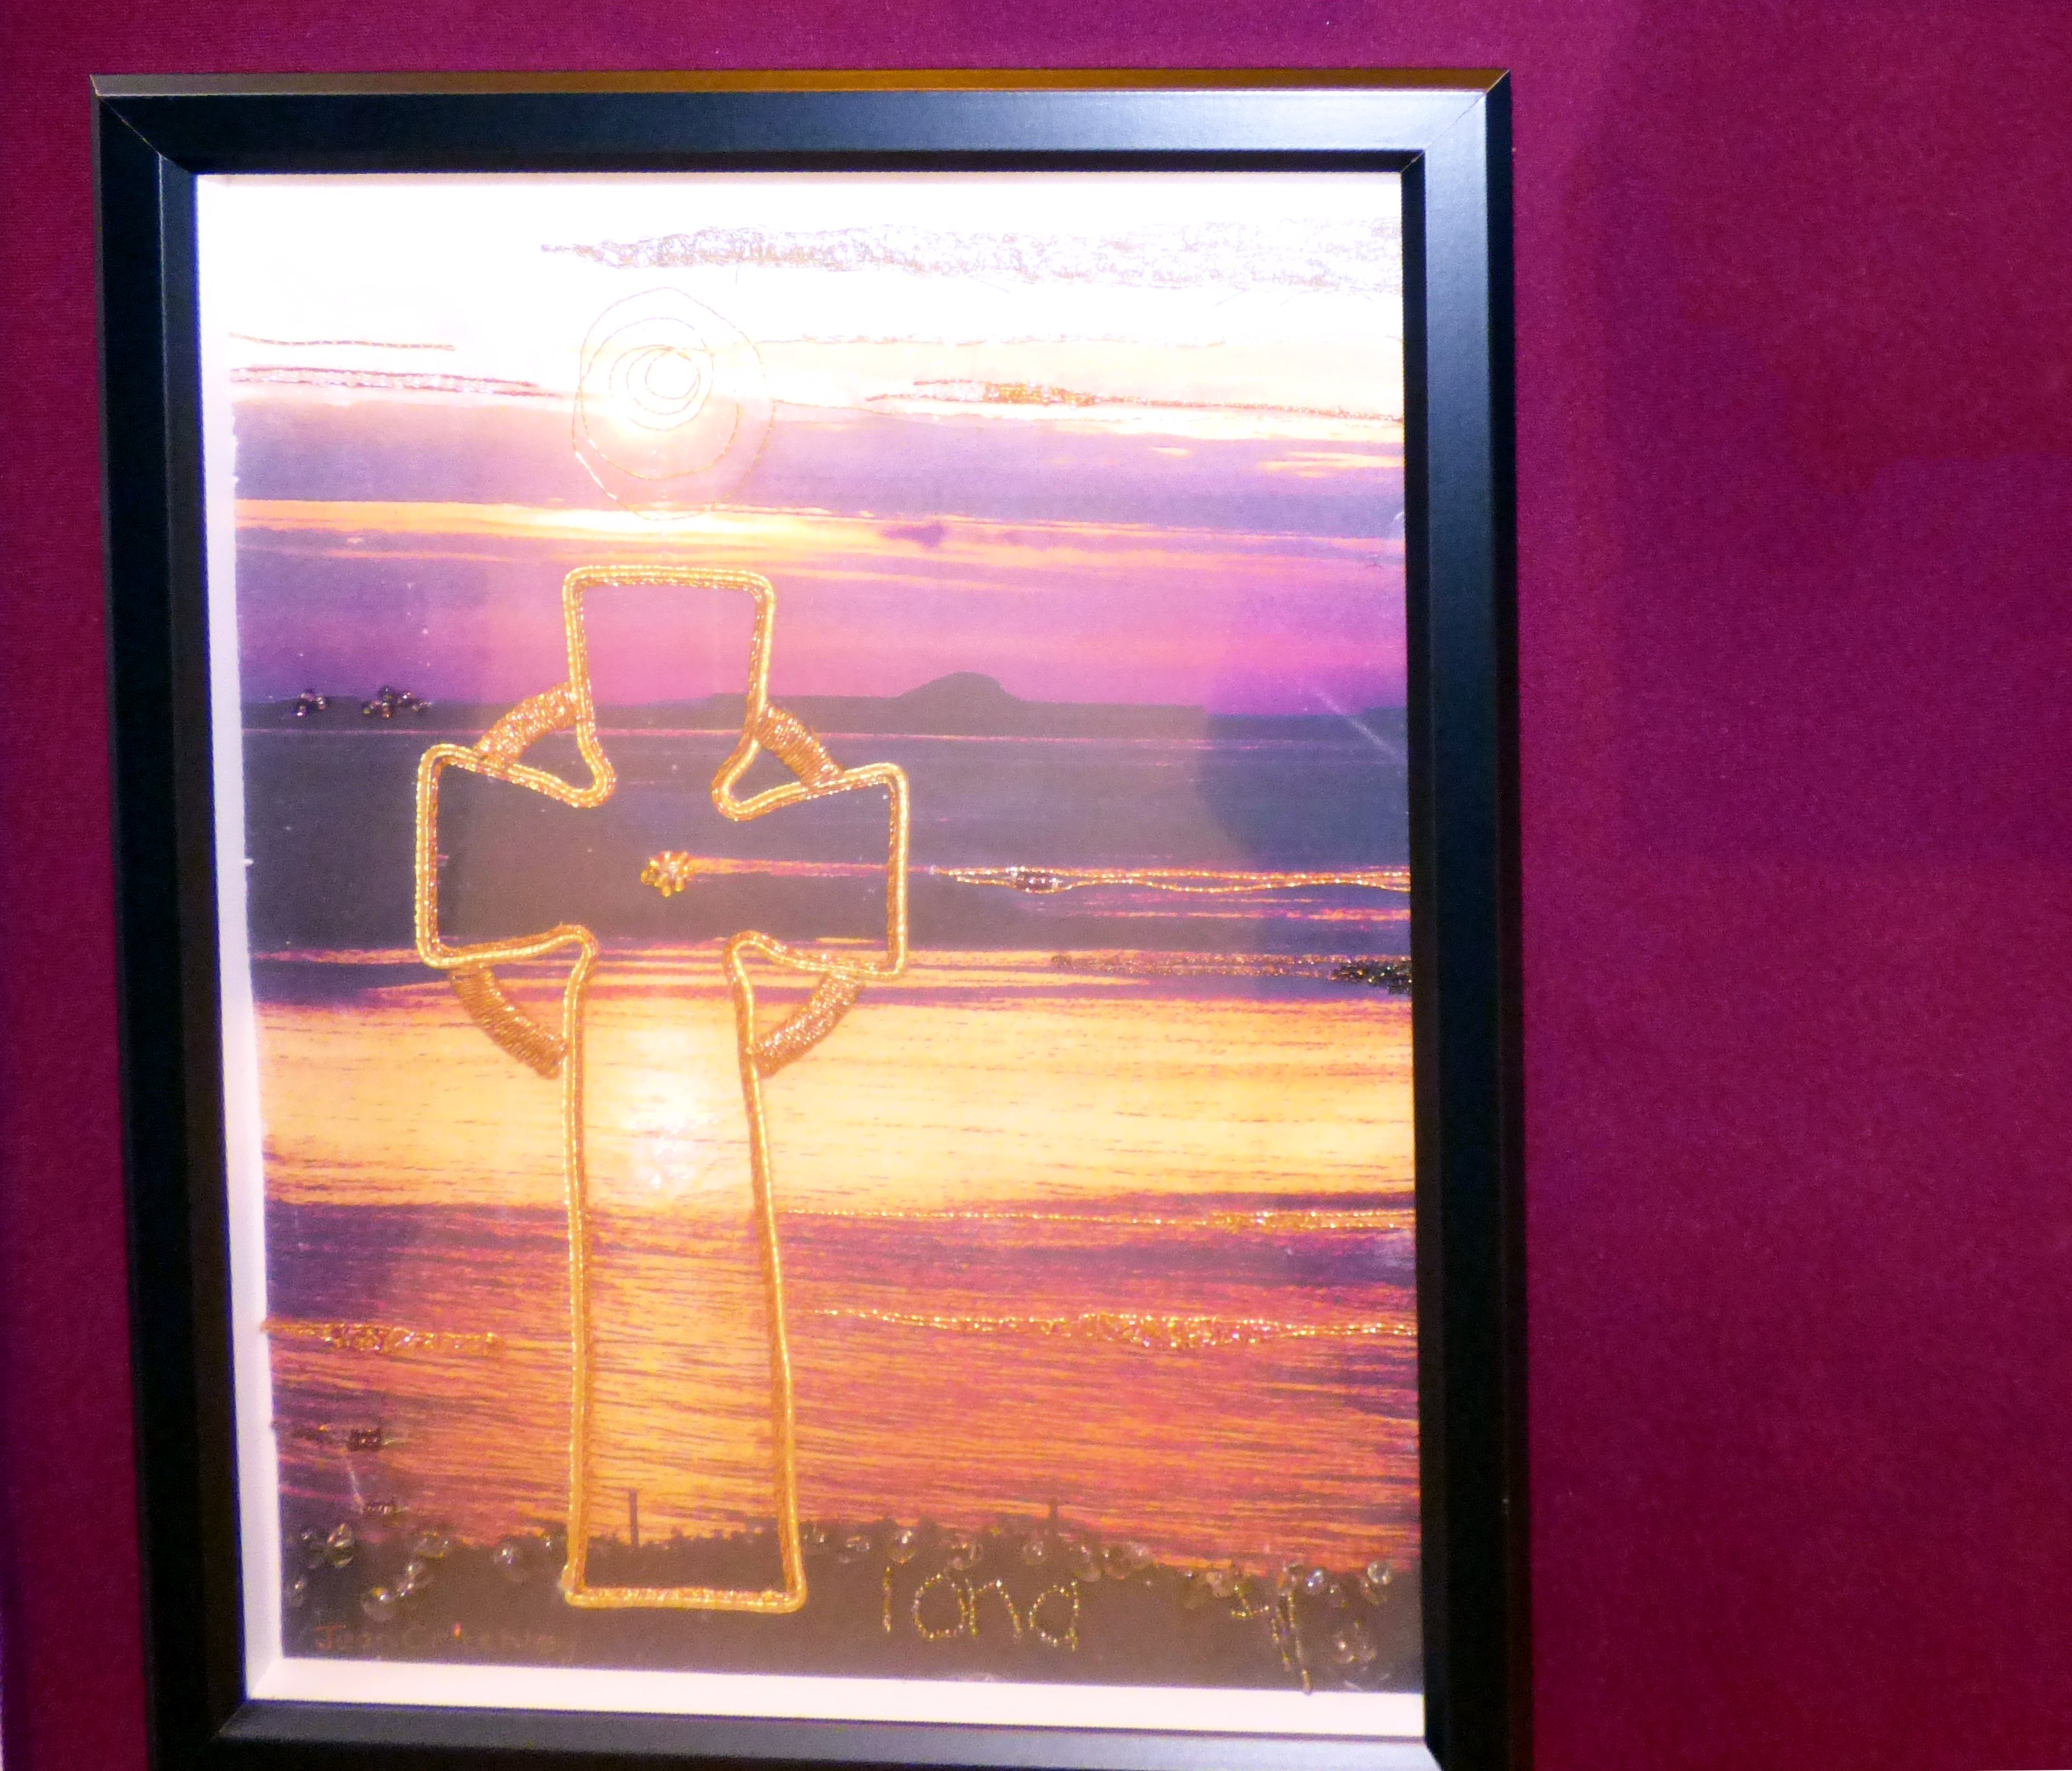 CELTIC CROSS IONA by Jean Critchley at 60 Glorious Years exhibition 2016